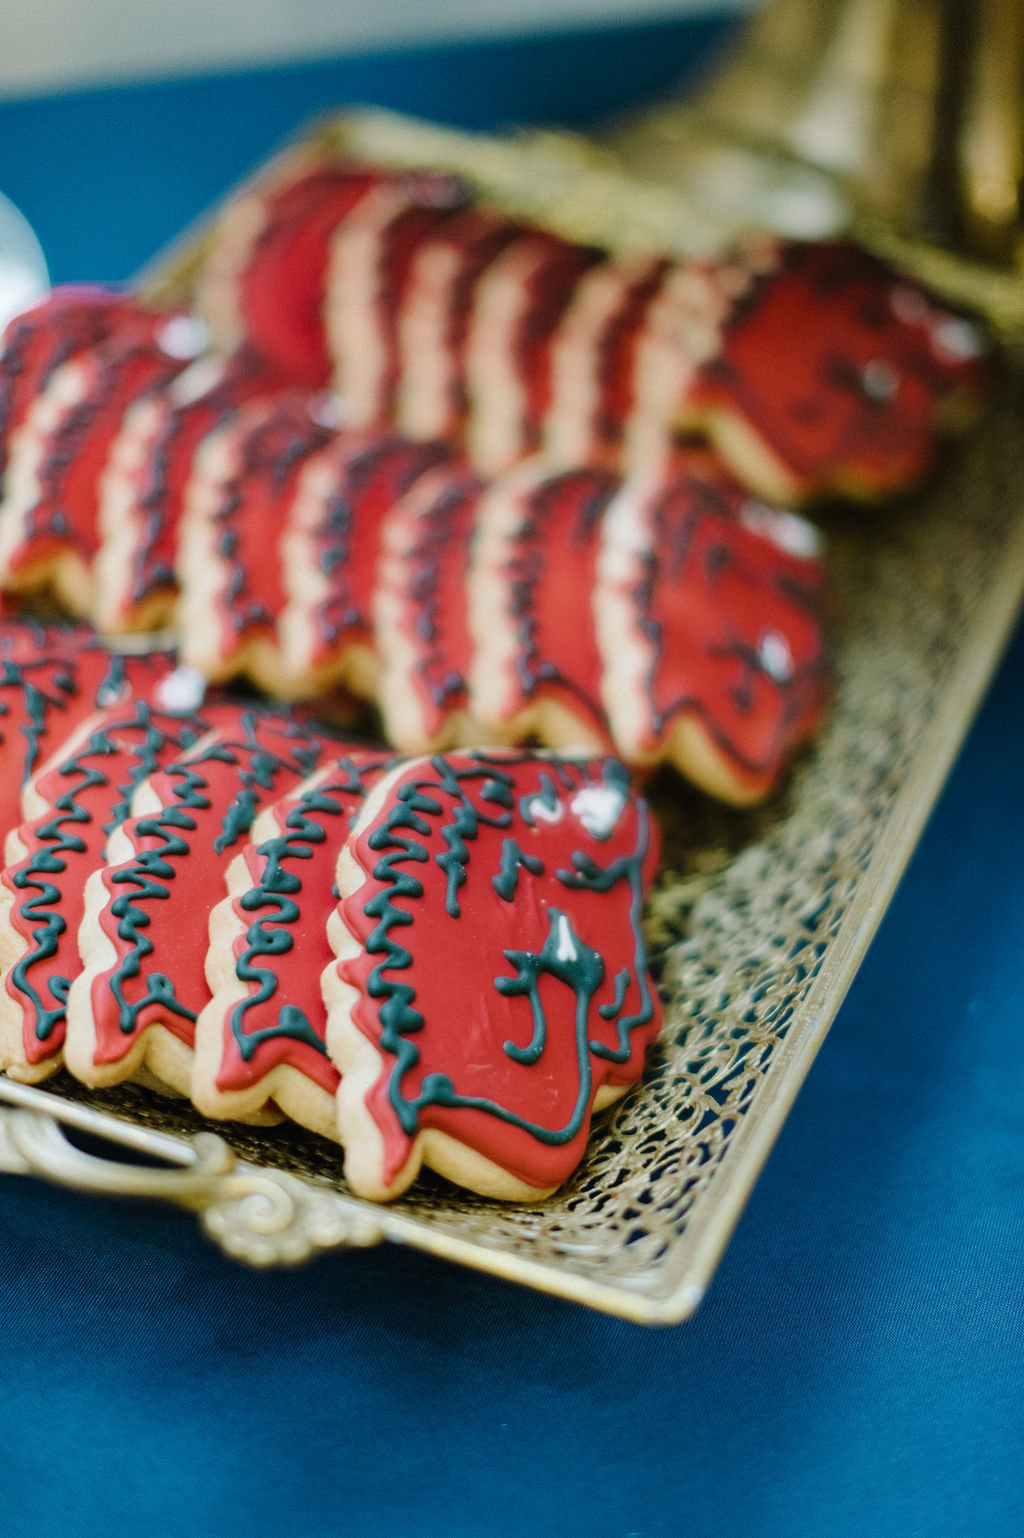 Arkansas Razorback cookies in place of grooms cake / Tyler Rosenthal Photography